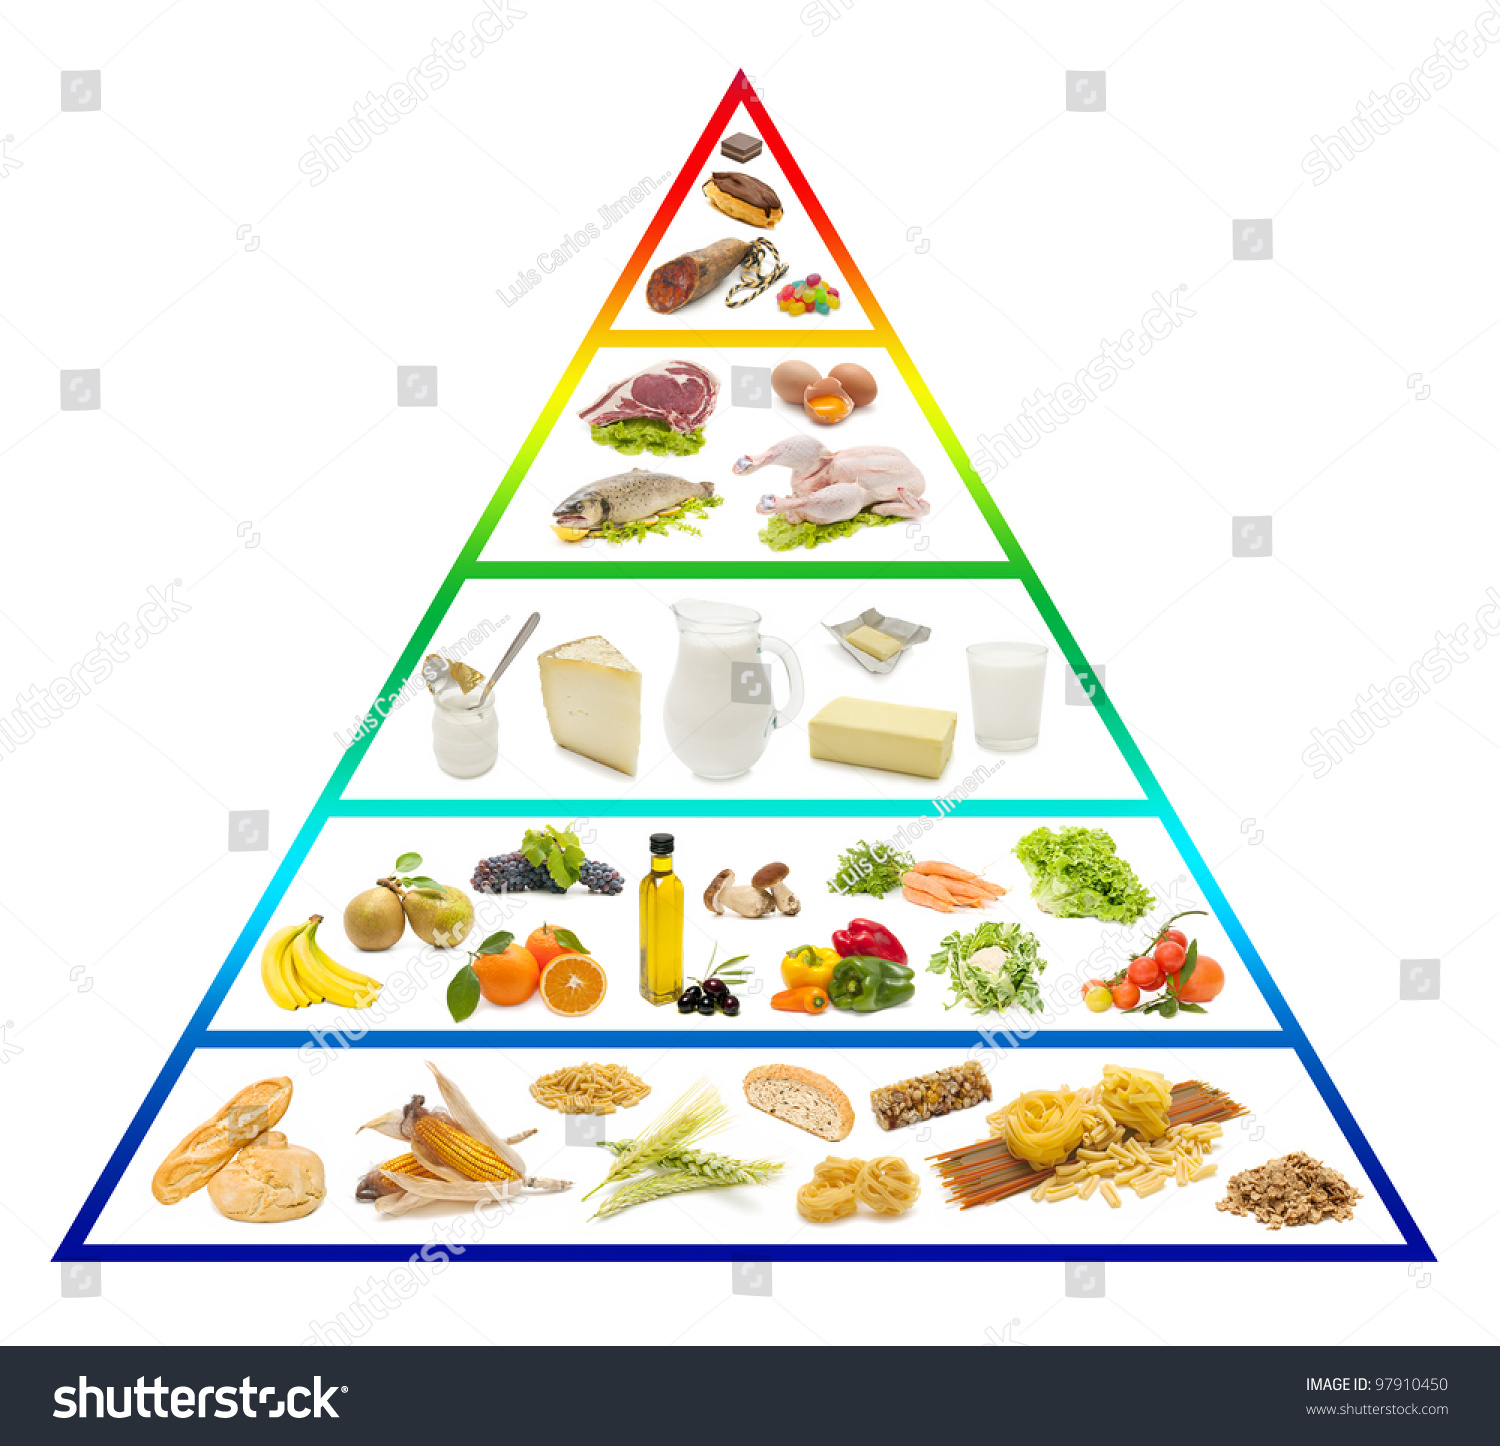 new food pyramid 2020